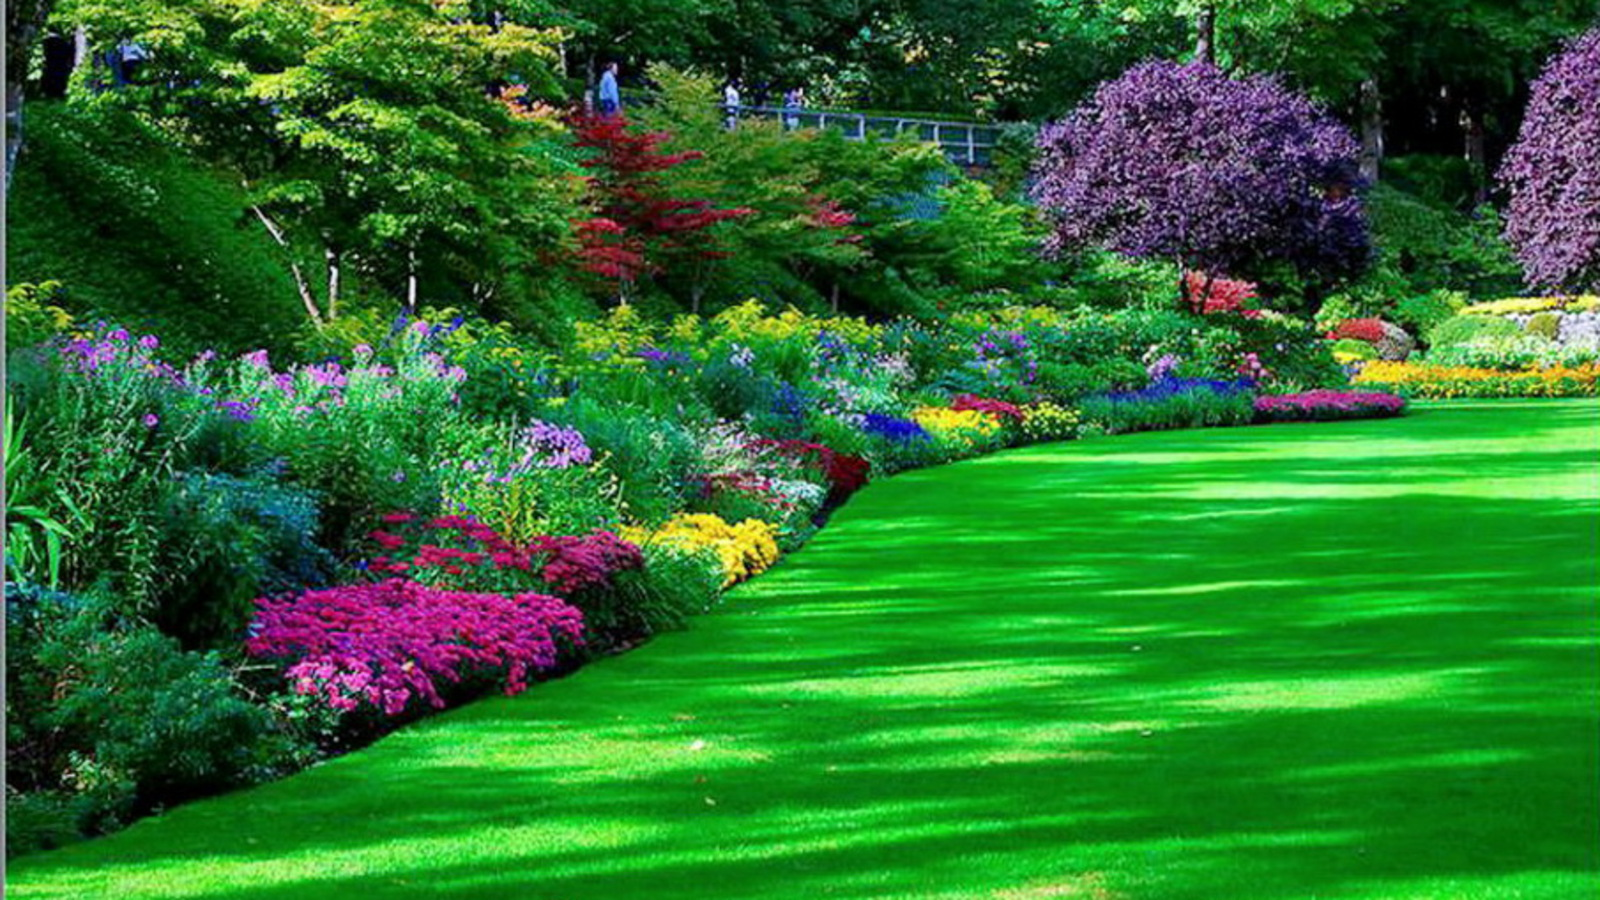 265 garden hd wallpapers | background images - wallpaper abyss